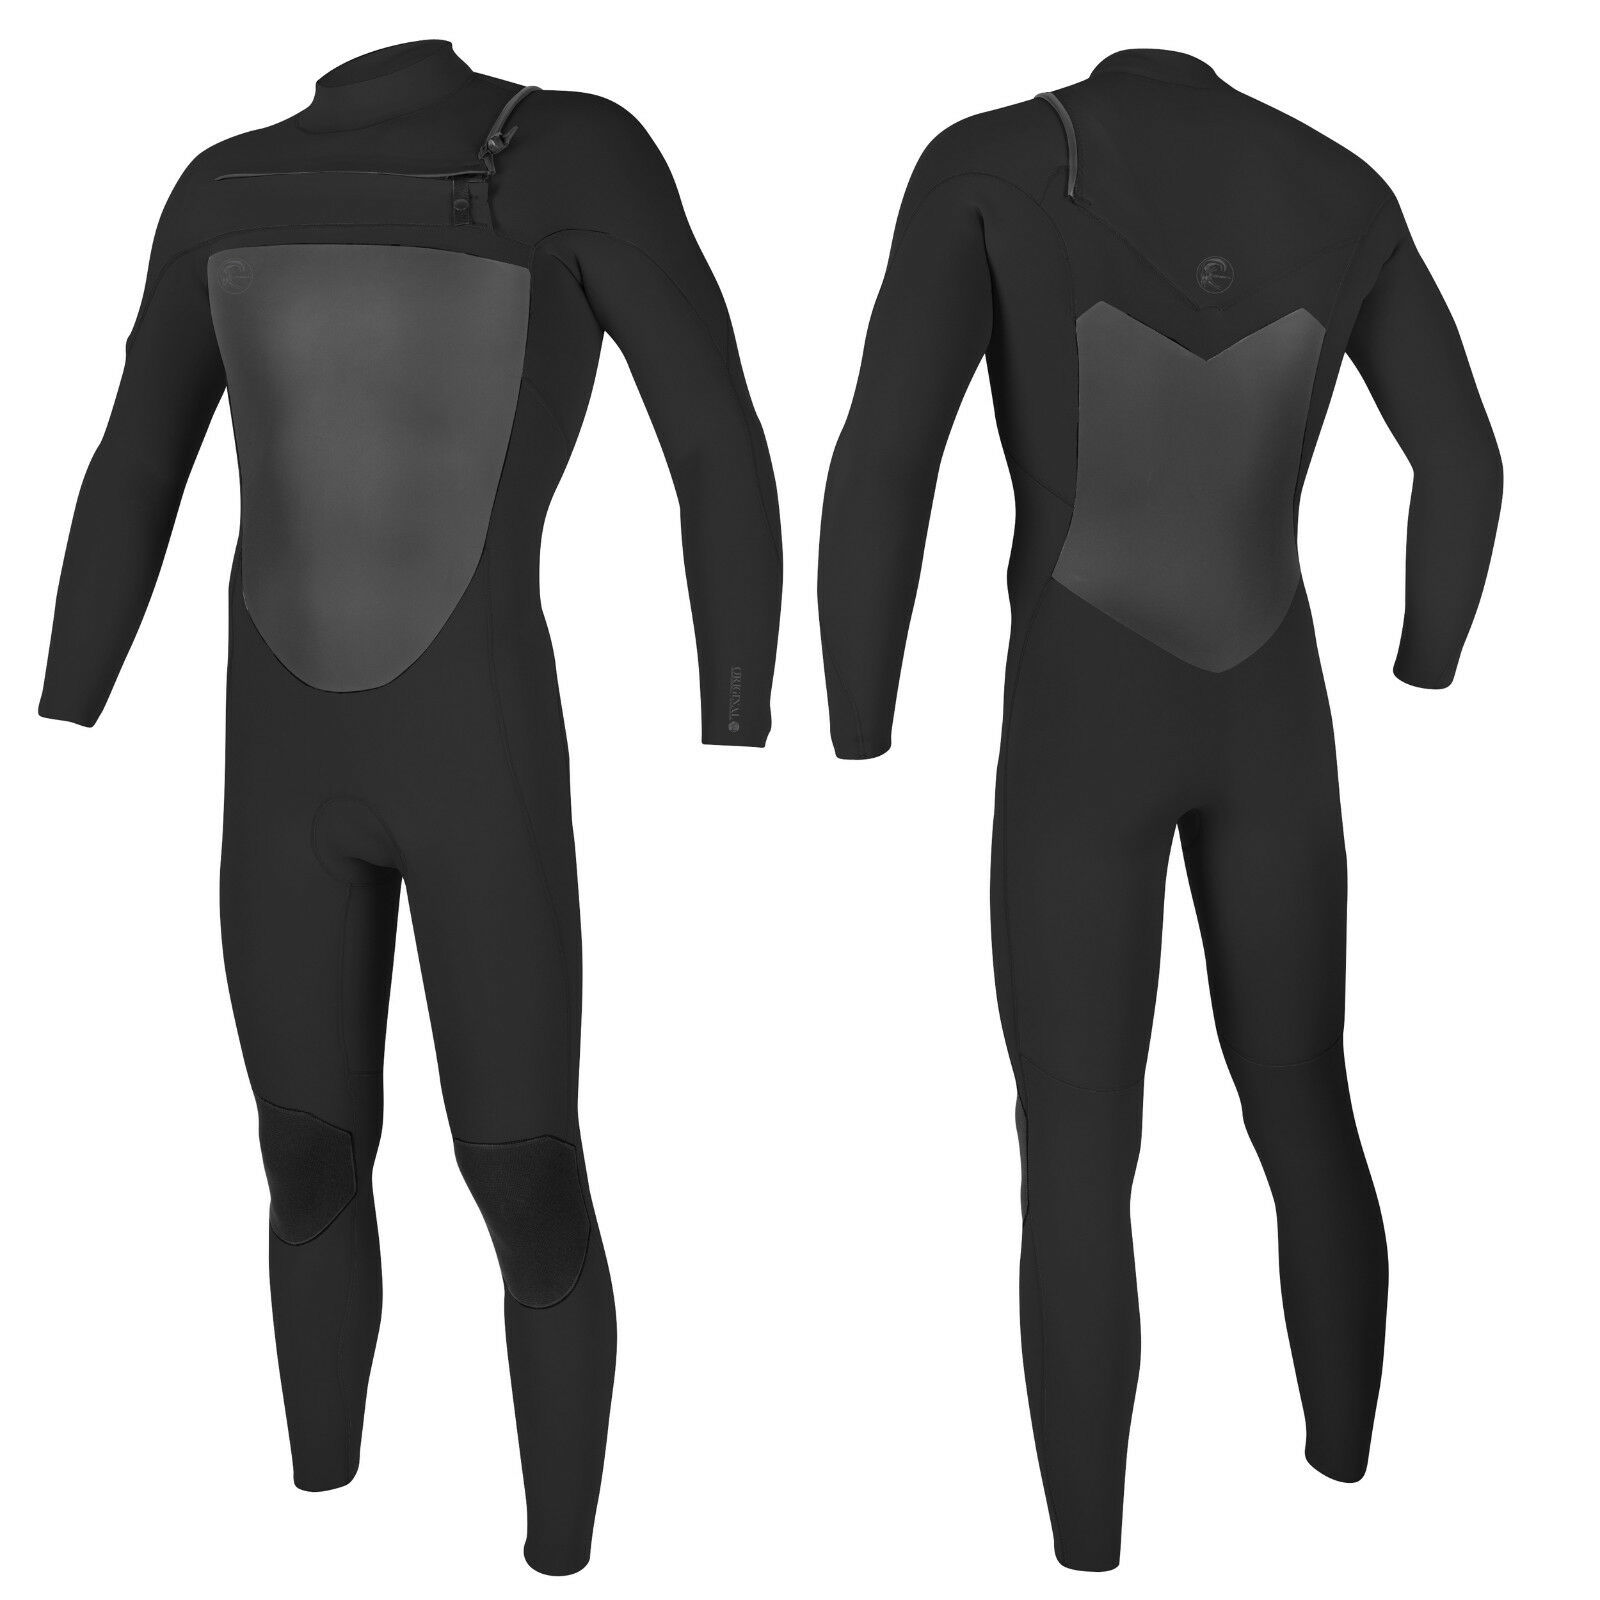 O'Neill O'riginal 5 4 front zip wetsuit - 2018-19